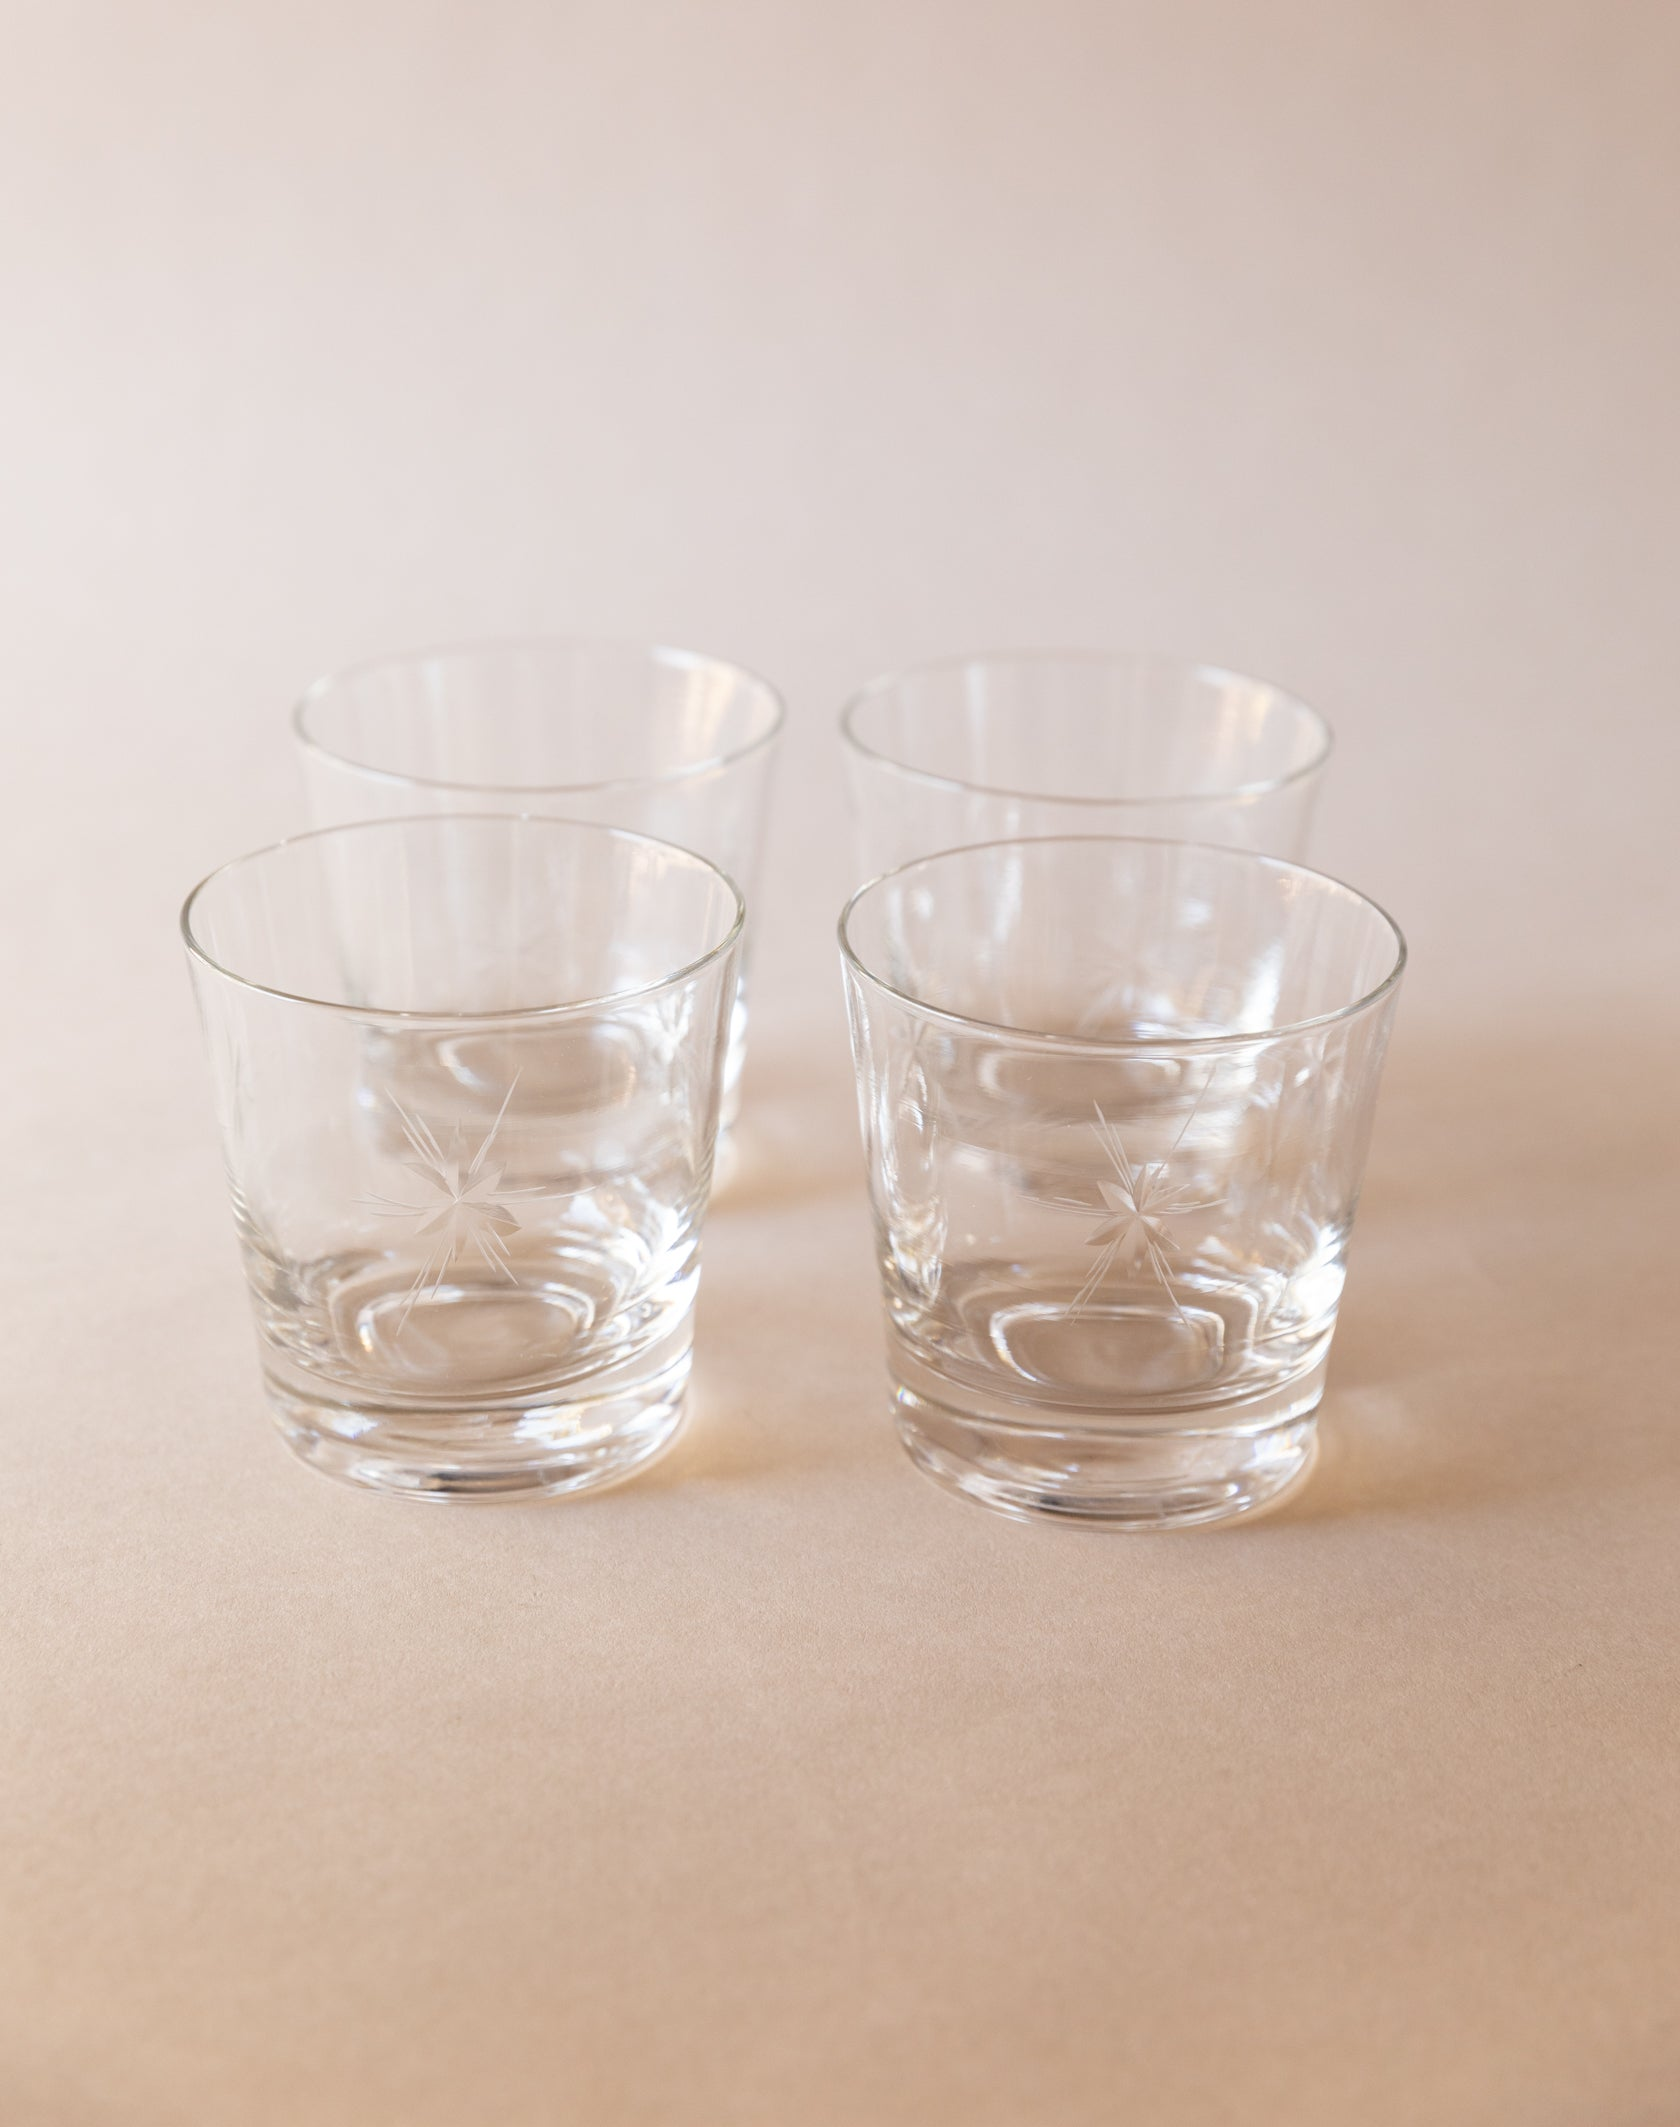 Starburst Etched Lowball Glasses, set of 4